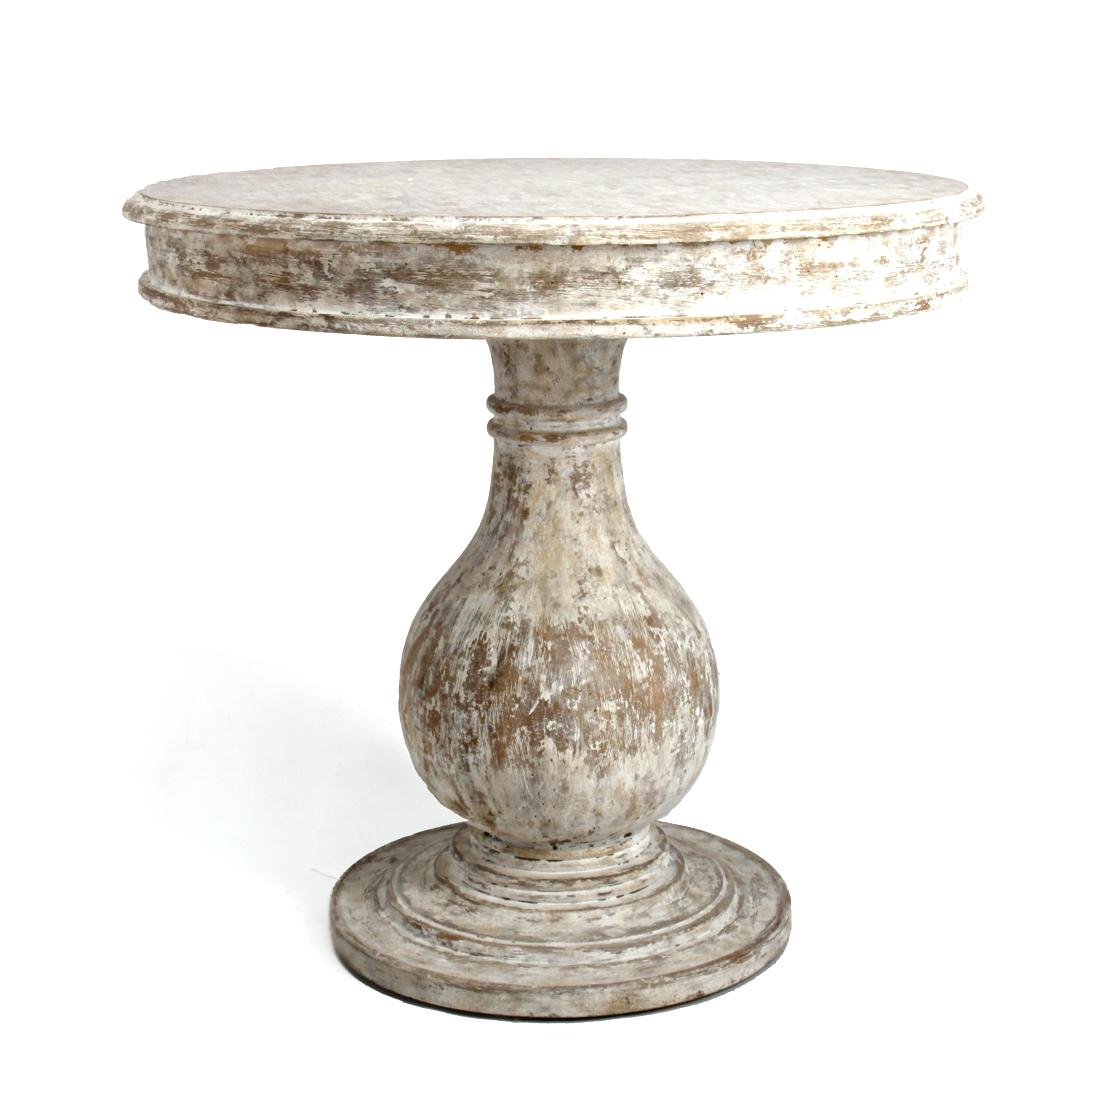 white round accent table target threshold tables whitewash small living room marble telephone household decorative items outdoor patio clearance cordless floor lamps home west elm